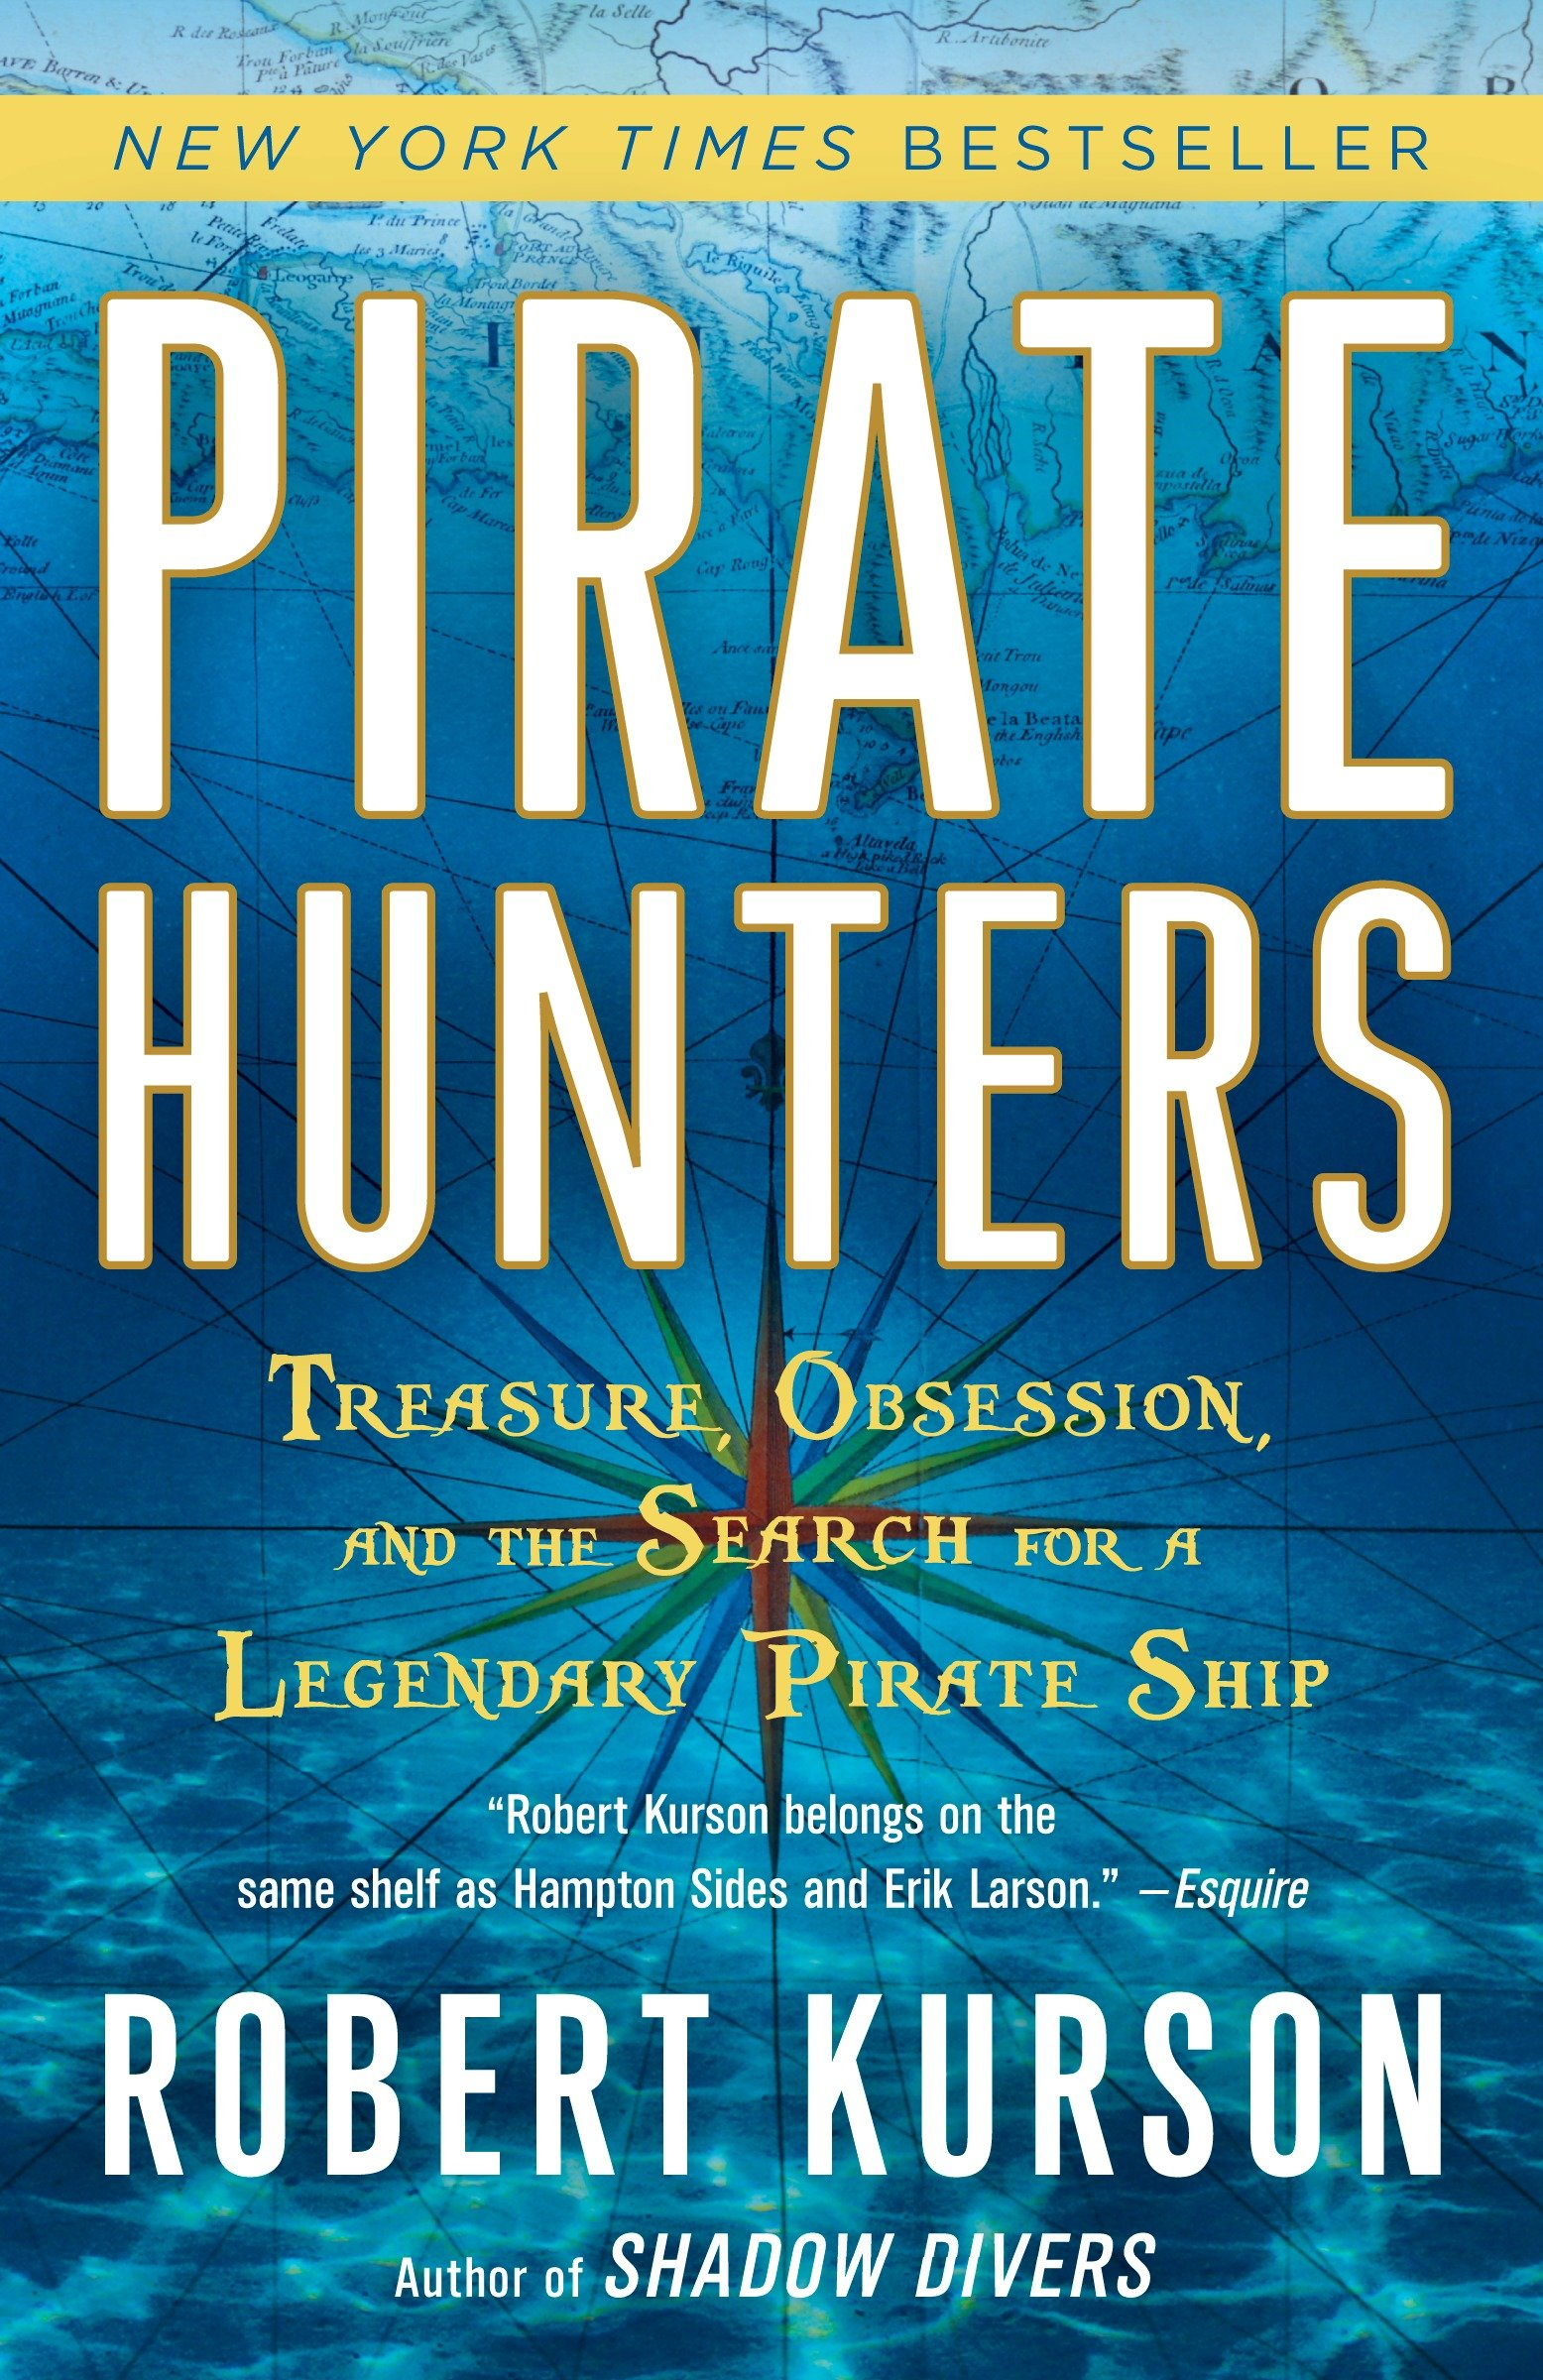 Pirate hunters treasure, obsession, and the search for a legendary pirate ship cover image